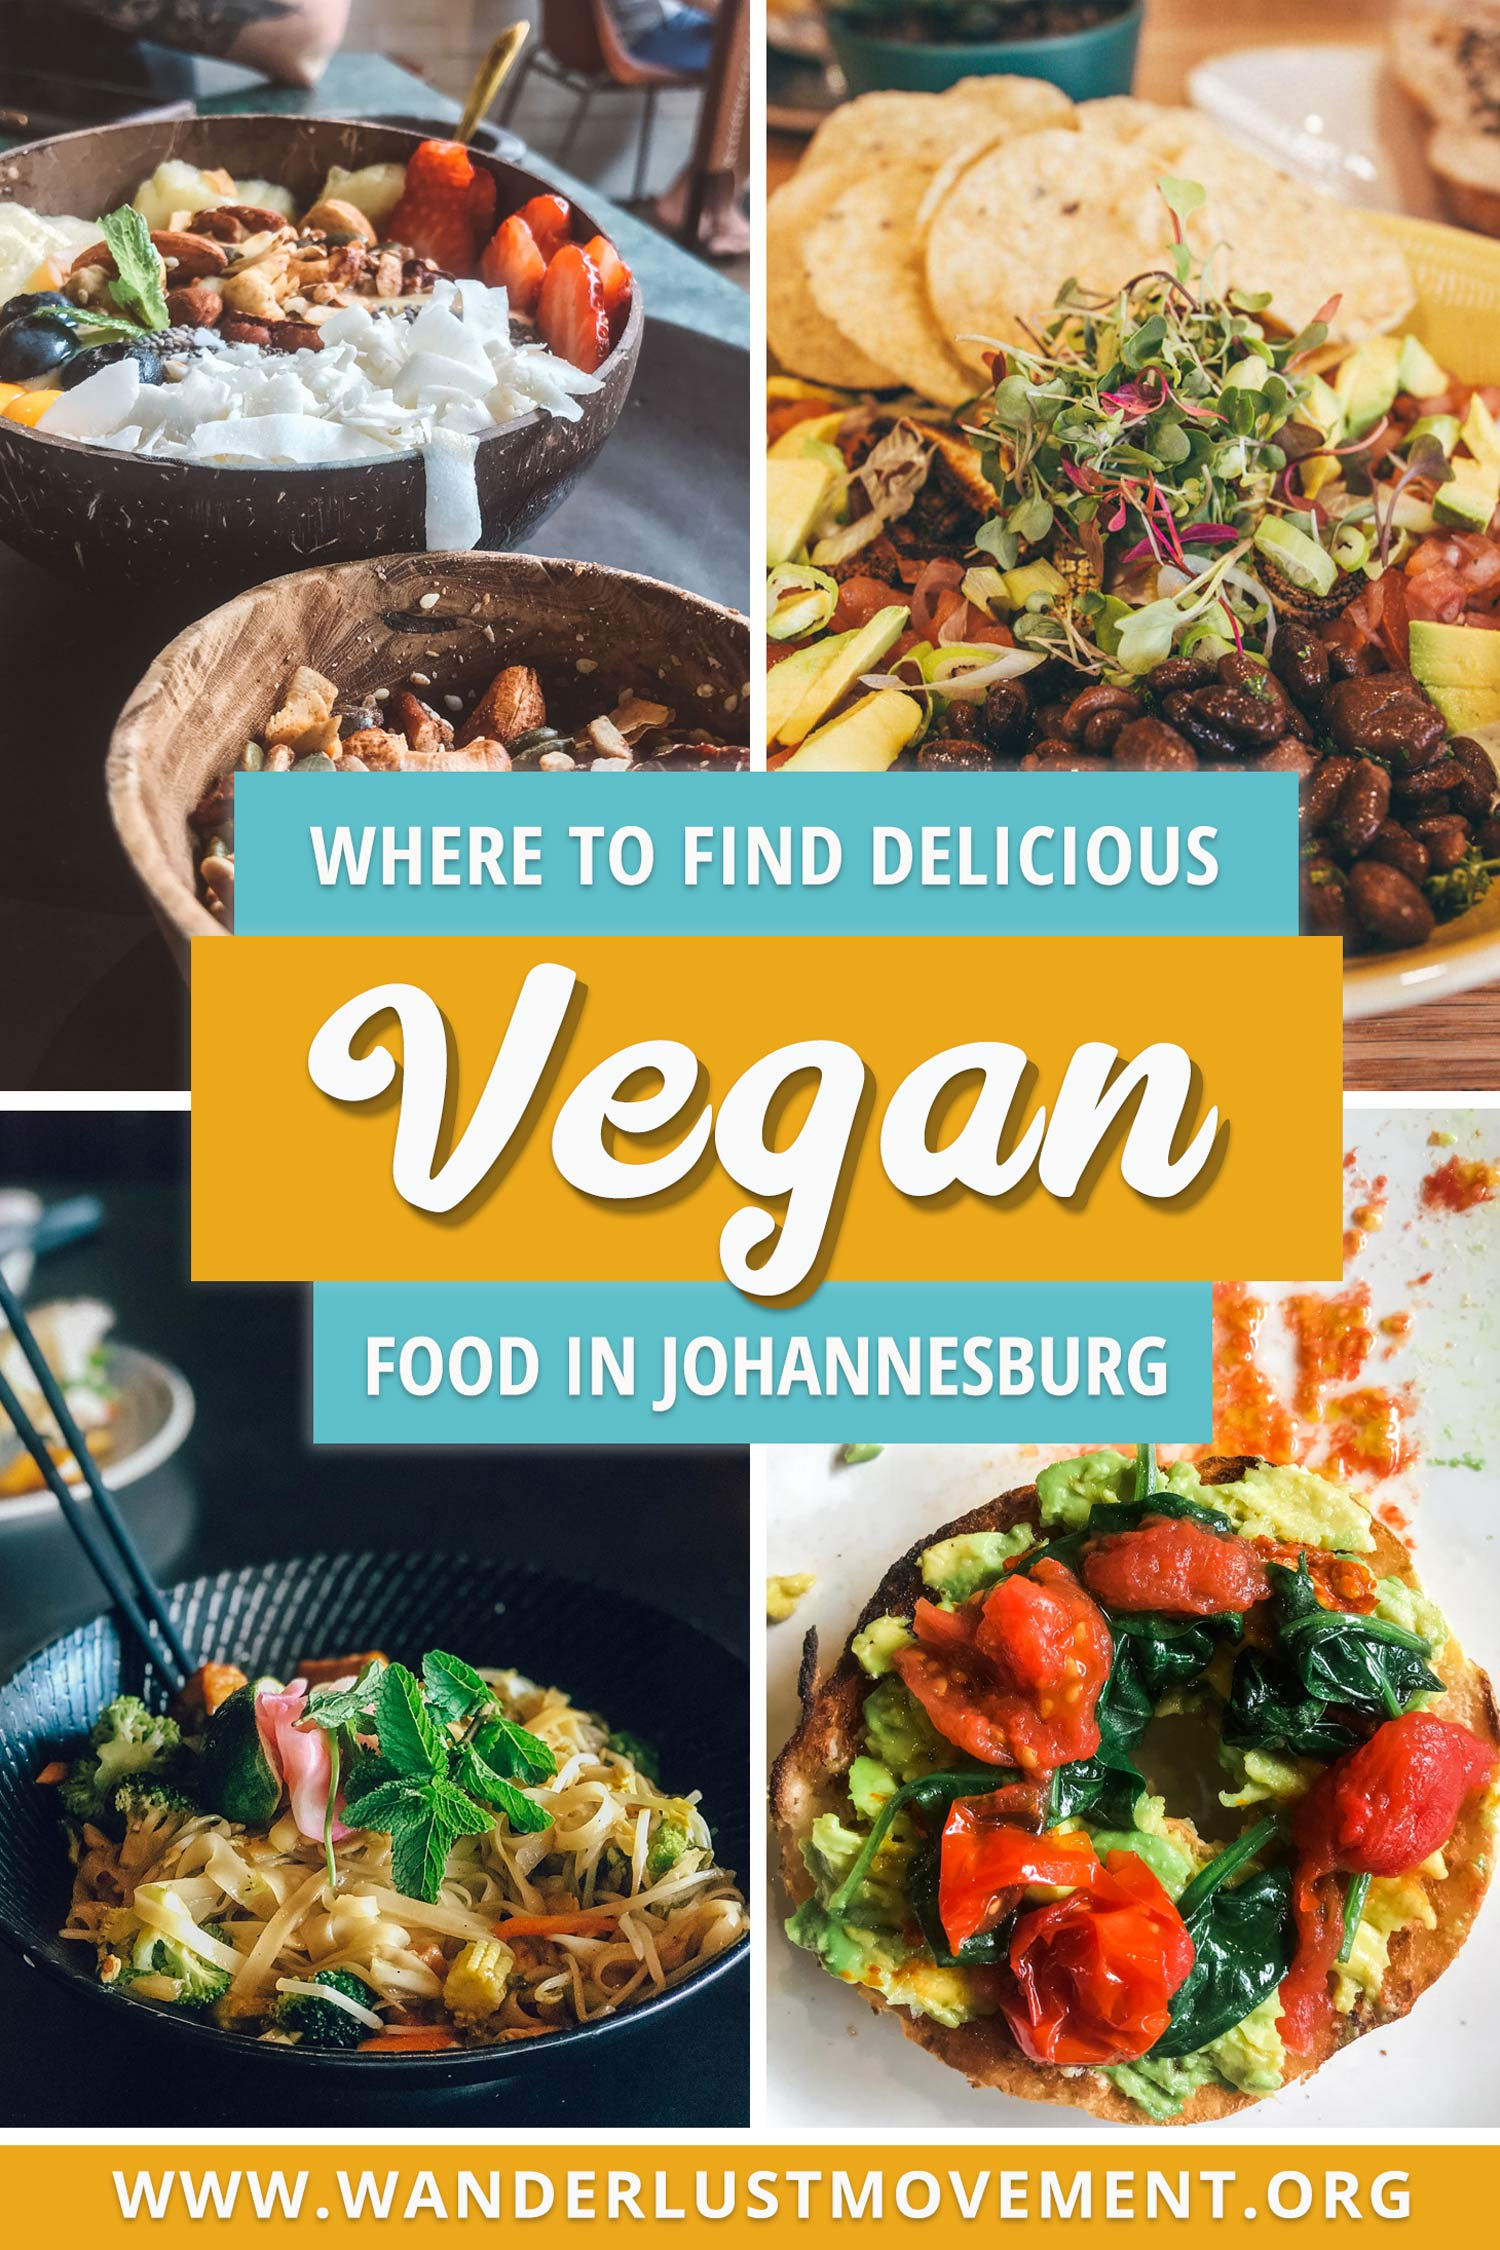 Where to Find Delicious Vegan Food in Johannesburg